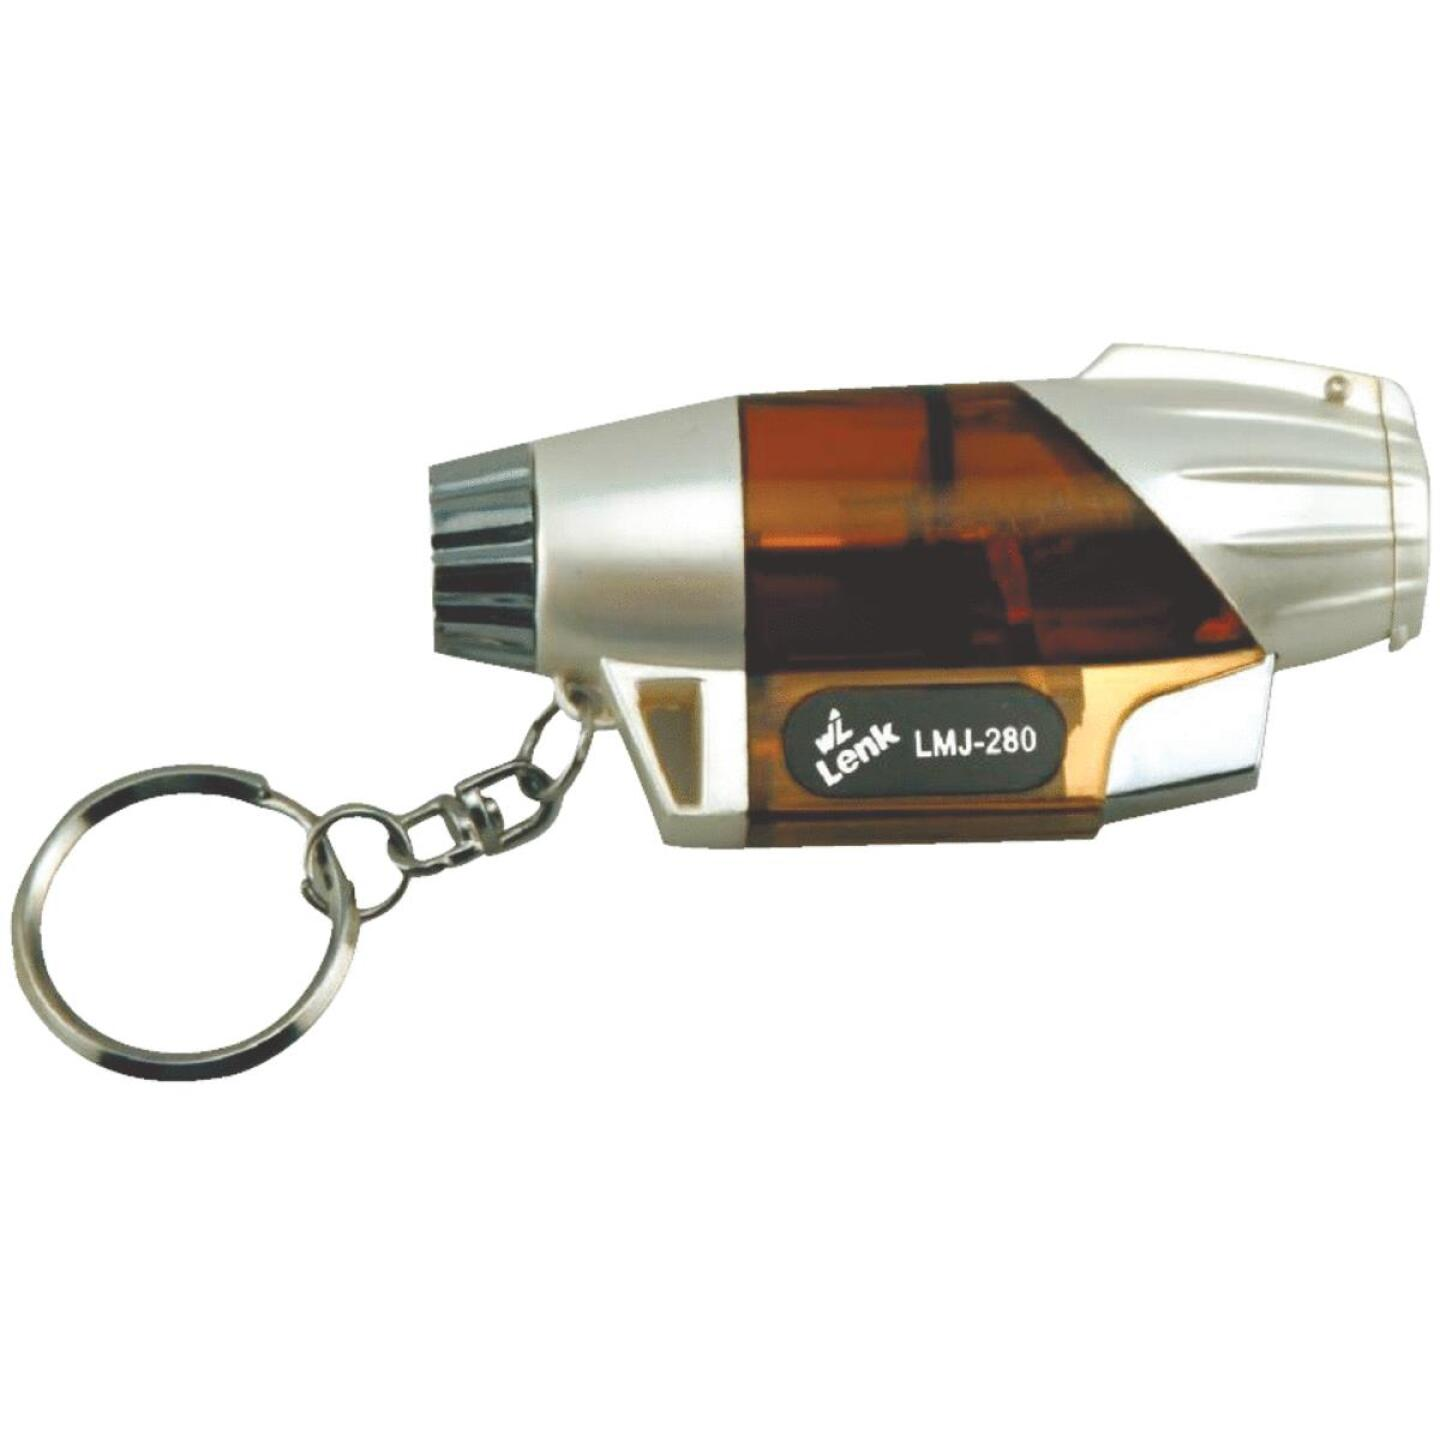 Wall Lenk Turbo-Lite Butane Micro Torch Image 1